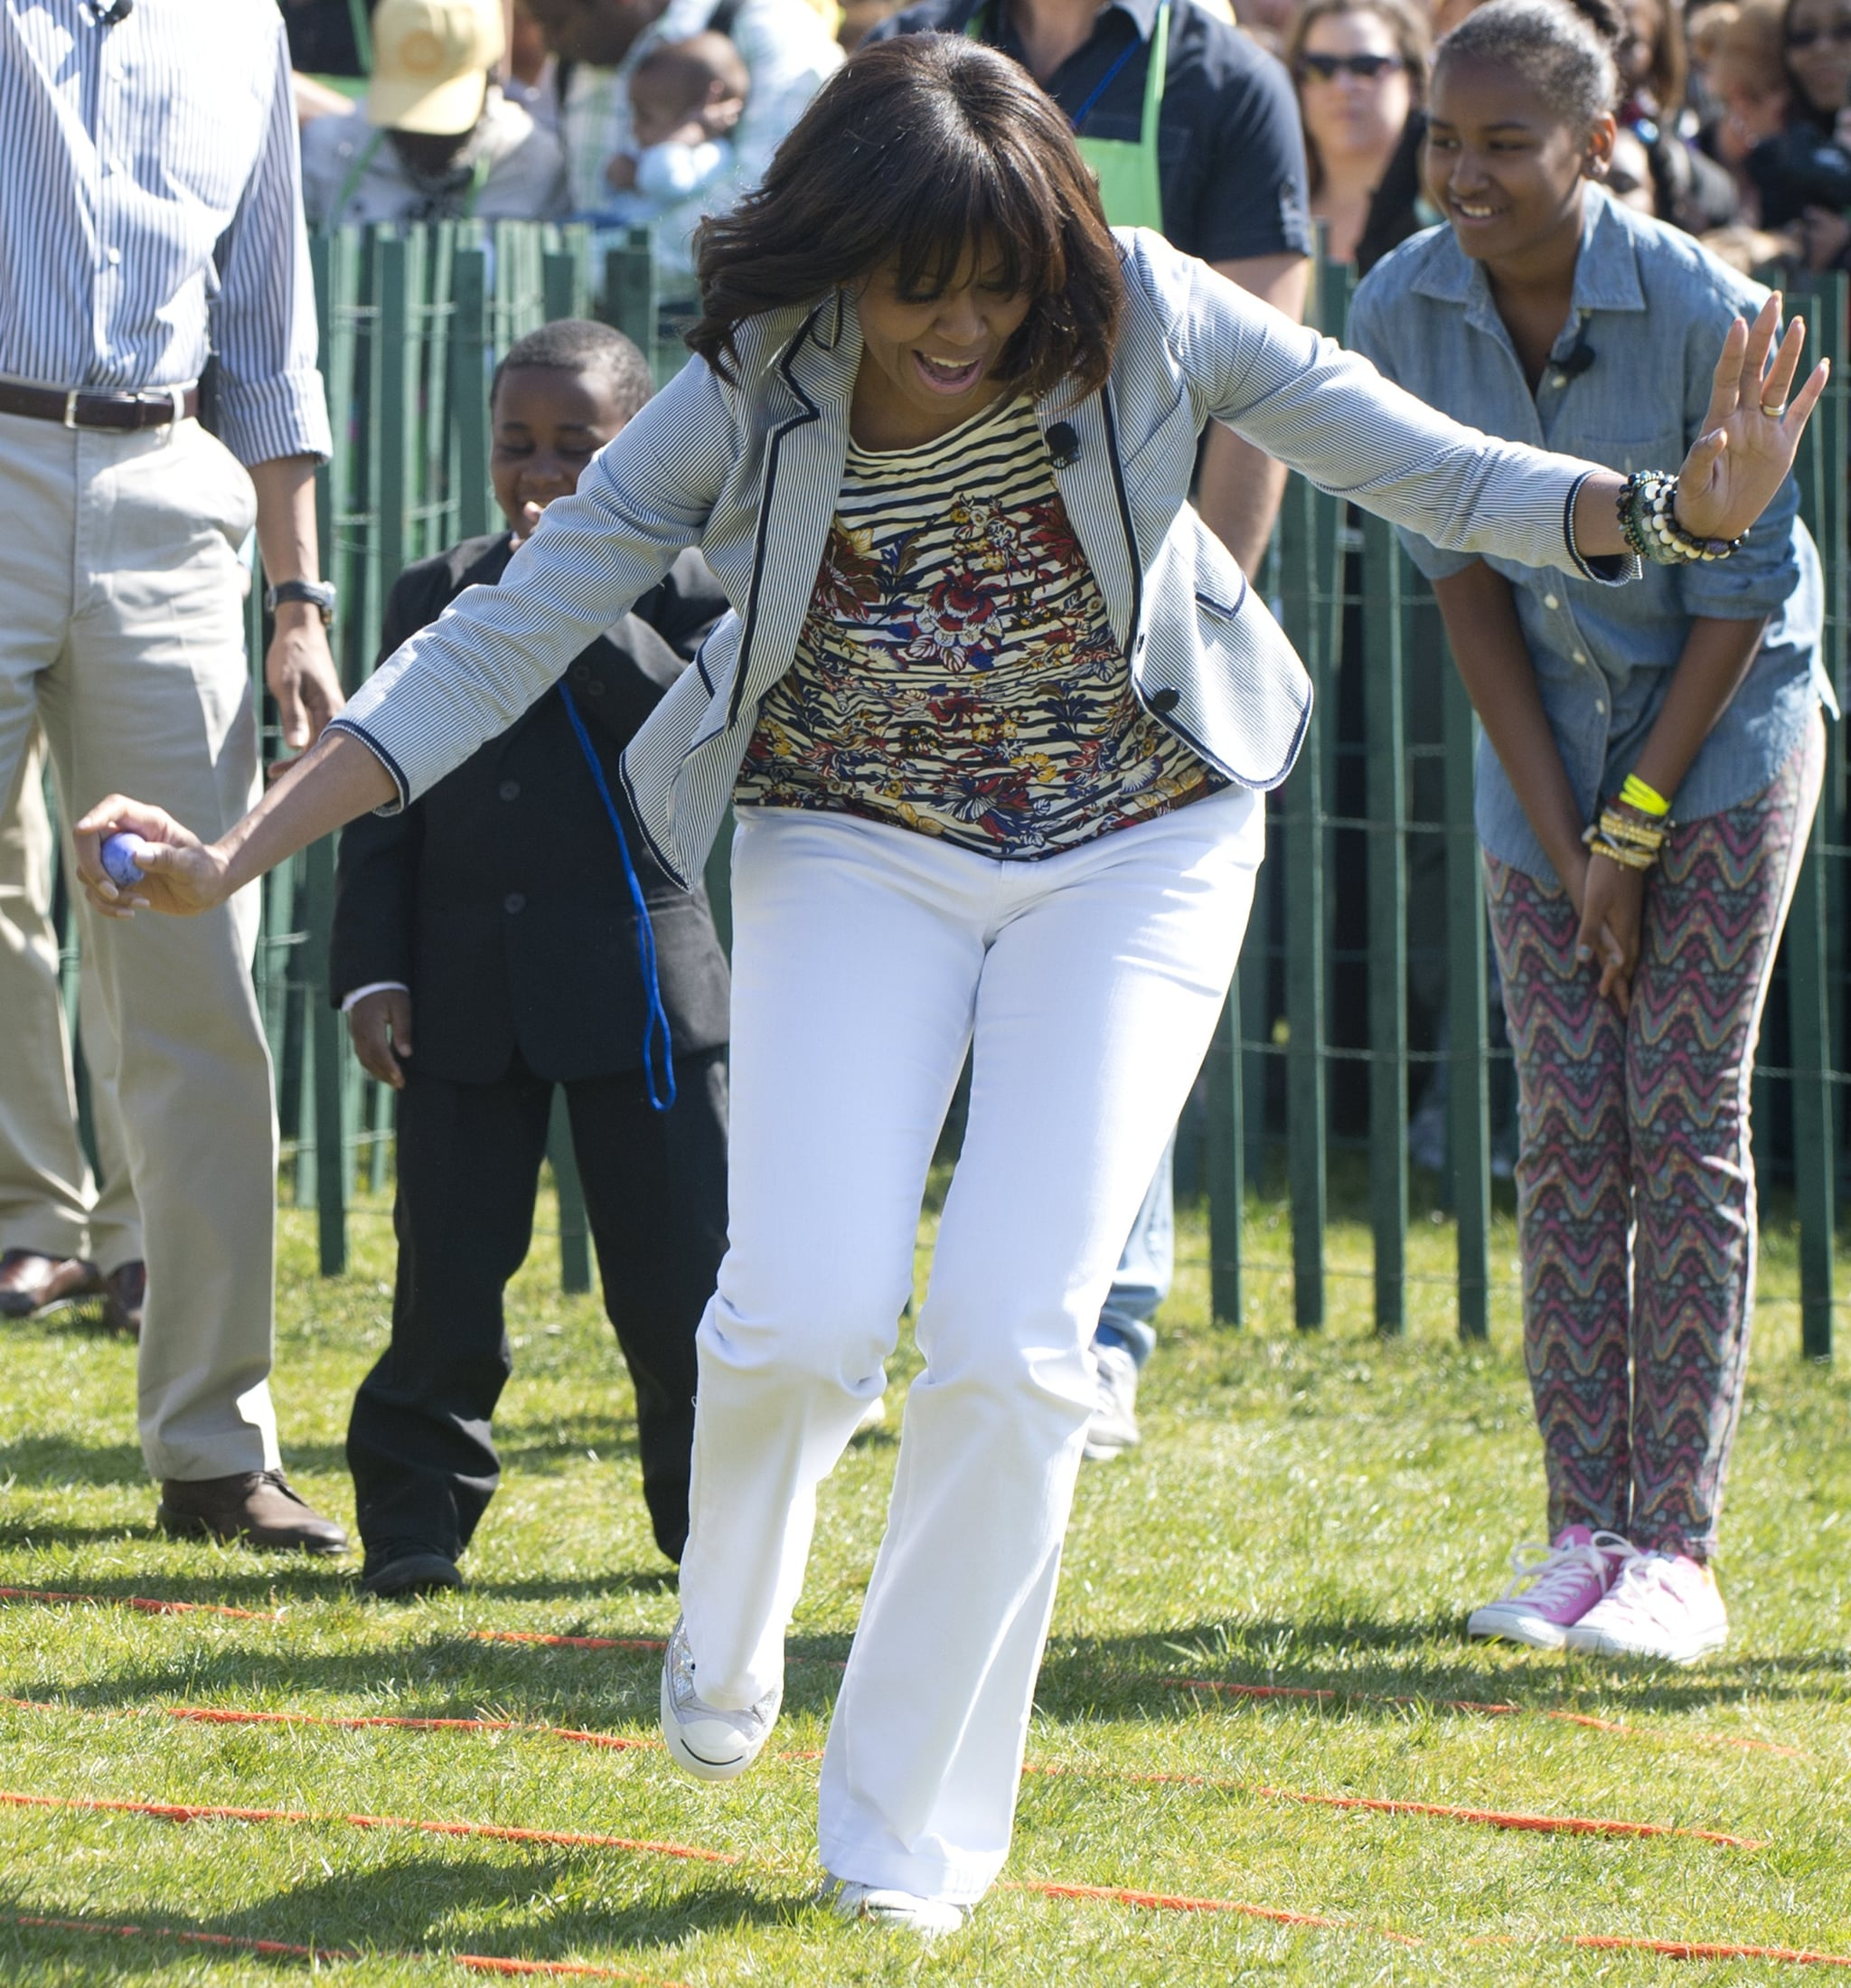 For the 2013 White House Easter Egg Roll, Michelle Obama looked fresh in pieces she's actually already worn before. She styled white pants with a striped and floral J.Crew t-shirt and a seersucker Talbots blazer.